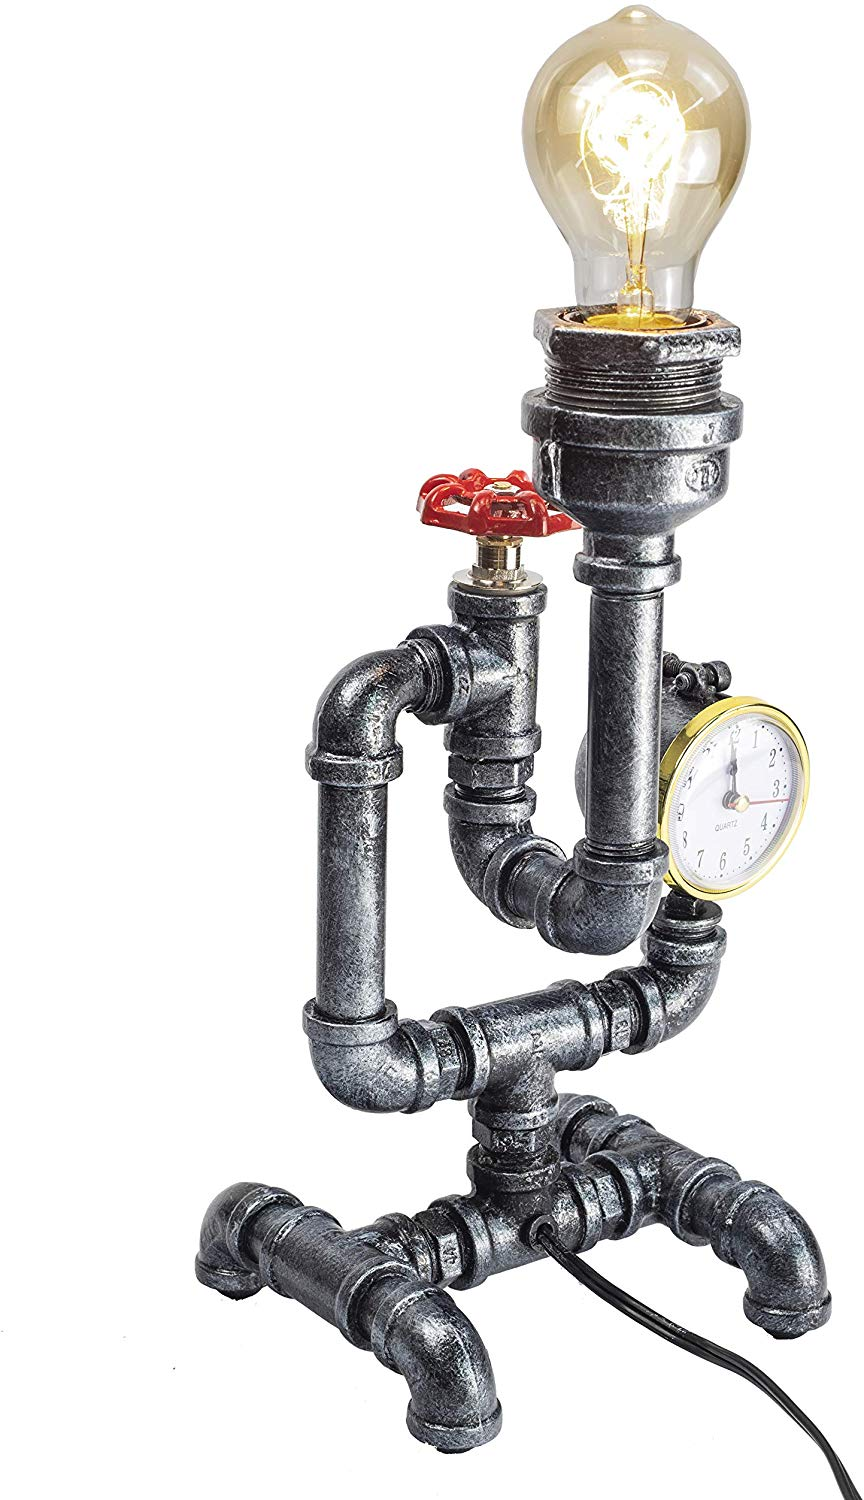 81cgS8KPIqL. AC SL1500 - Best Industrial Pipe Lamps 2020 [User Rated]